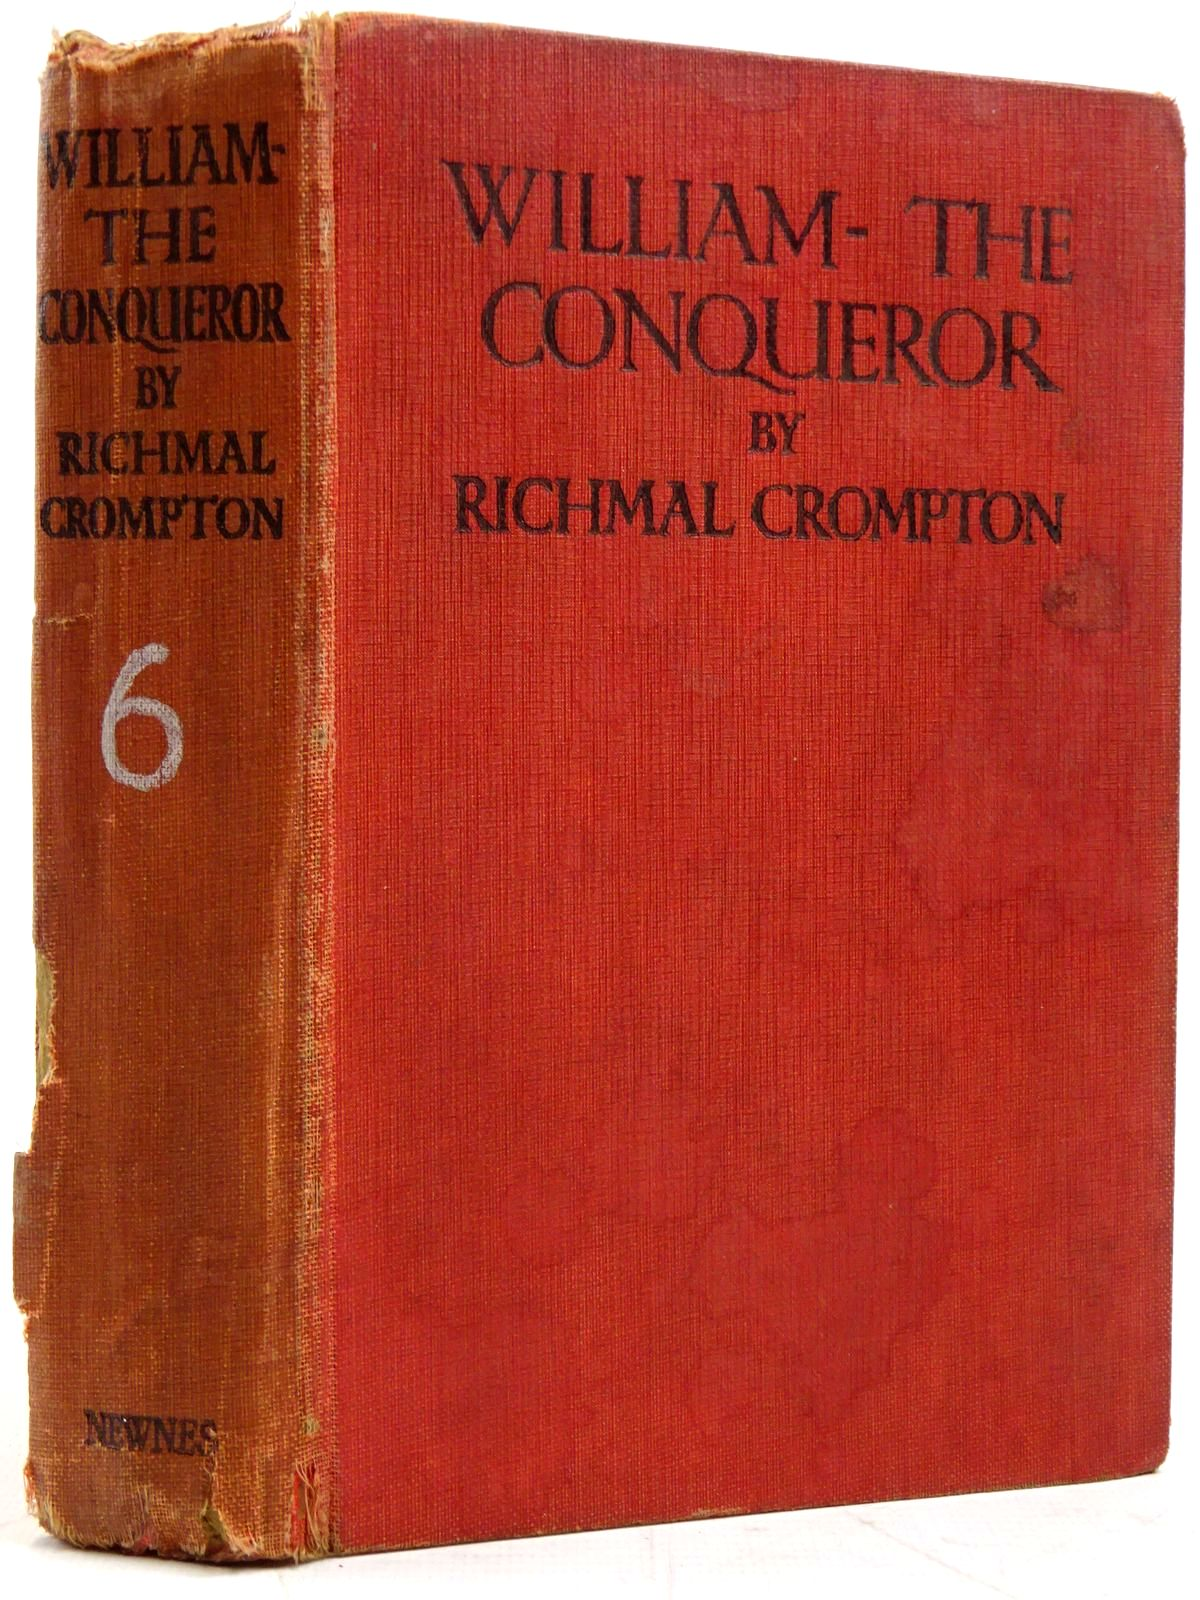 Photo of WILLIAM THE CONQUEROR written by Crompton, Richmal illustrated by Henry, Thomas published by George Newnes Limited (STOCK CODE: 2131423)  for sale by Stella & Rose's Books